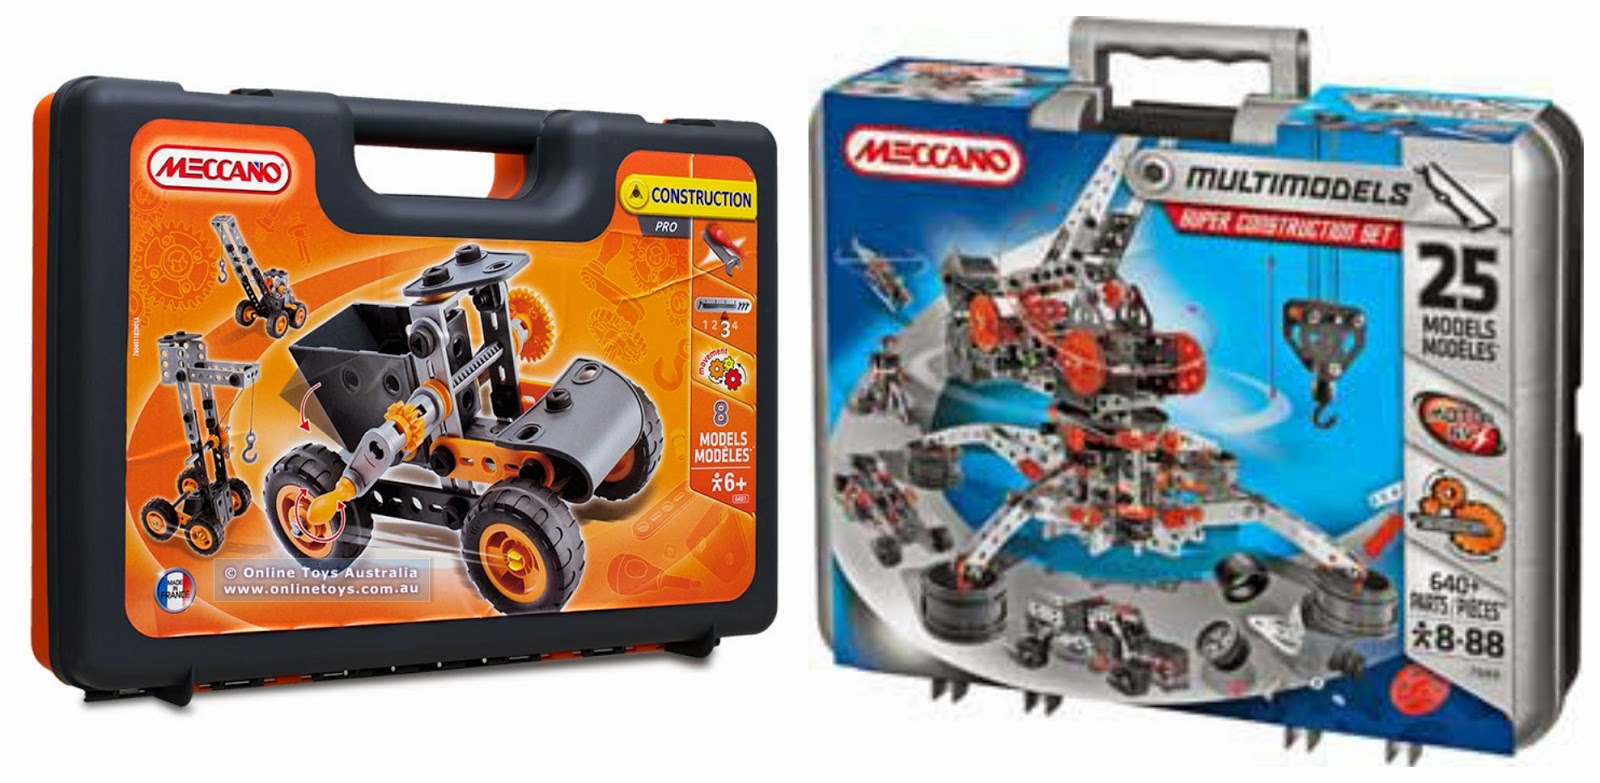 Meccano construction sets